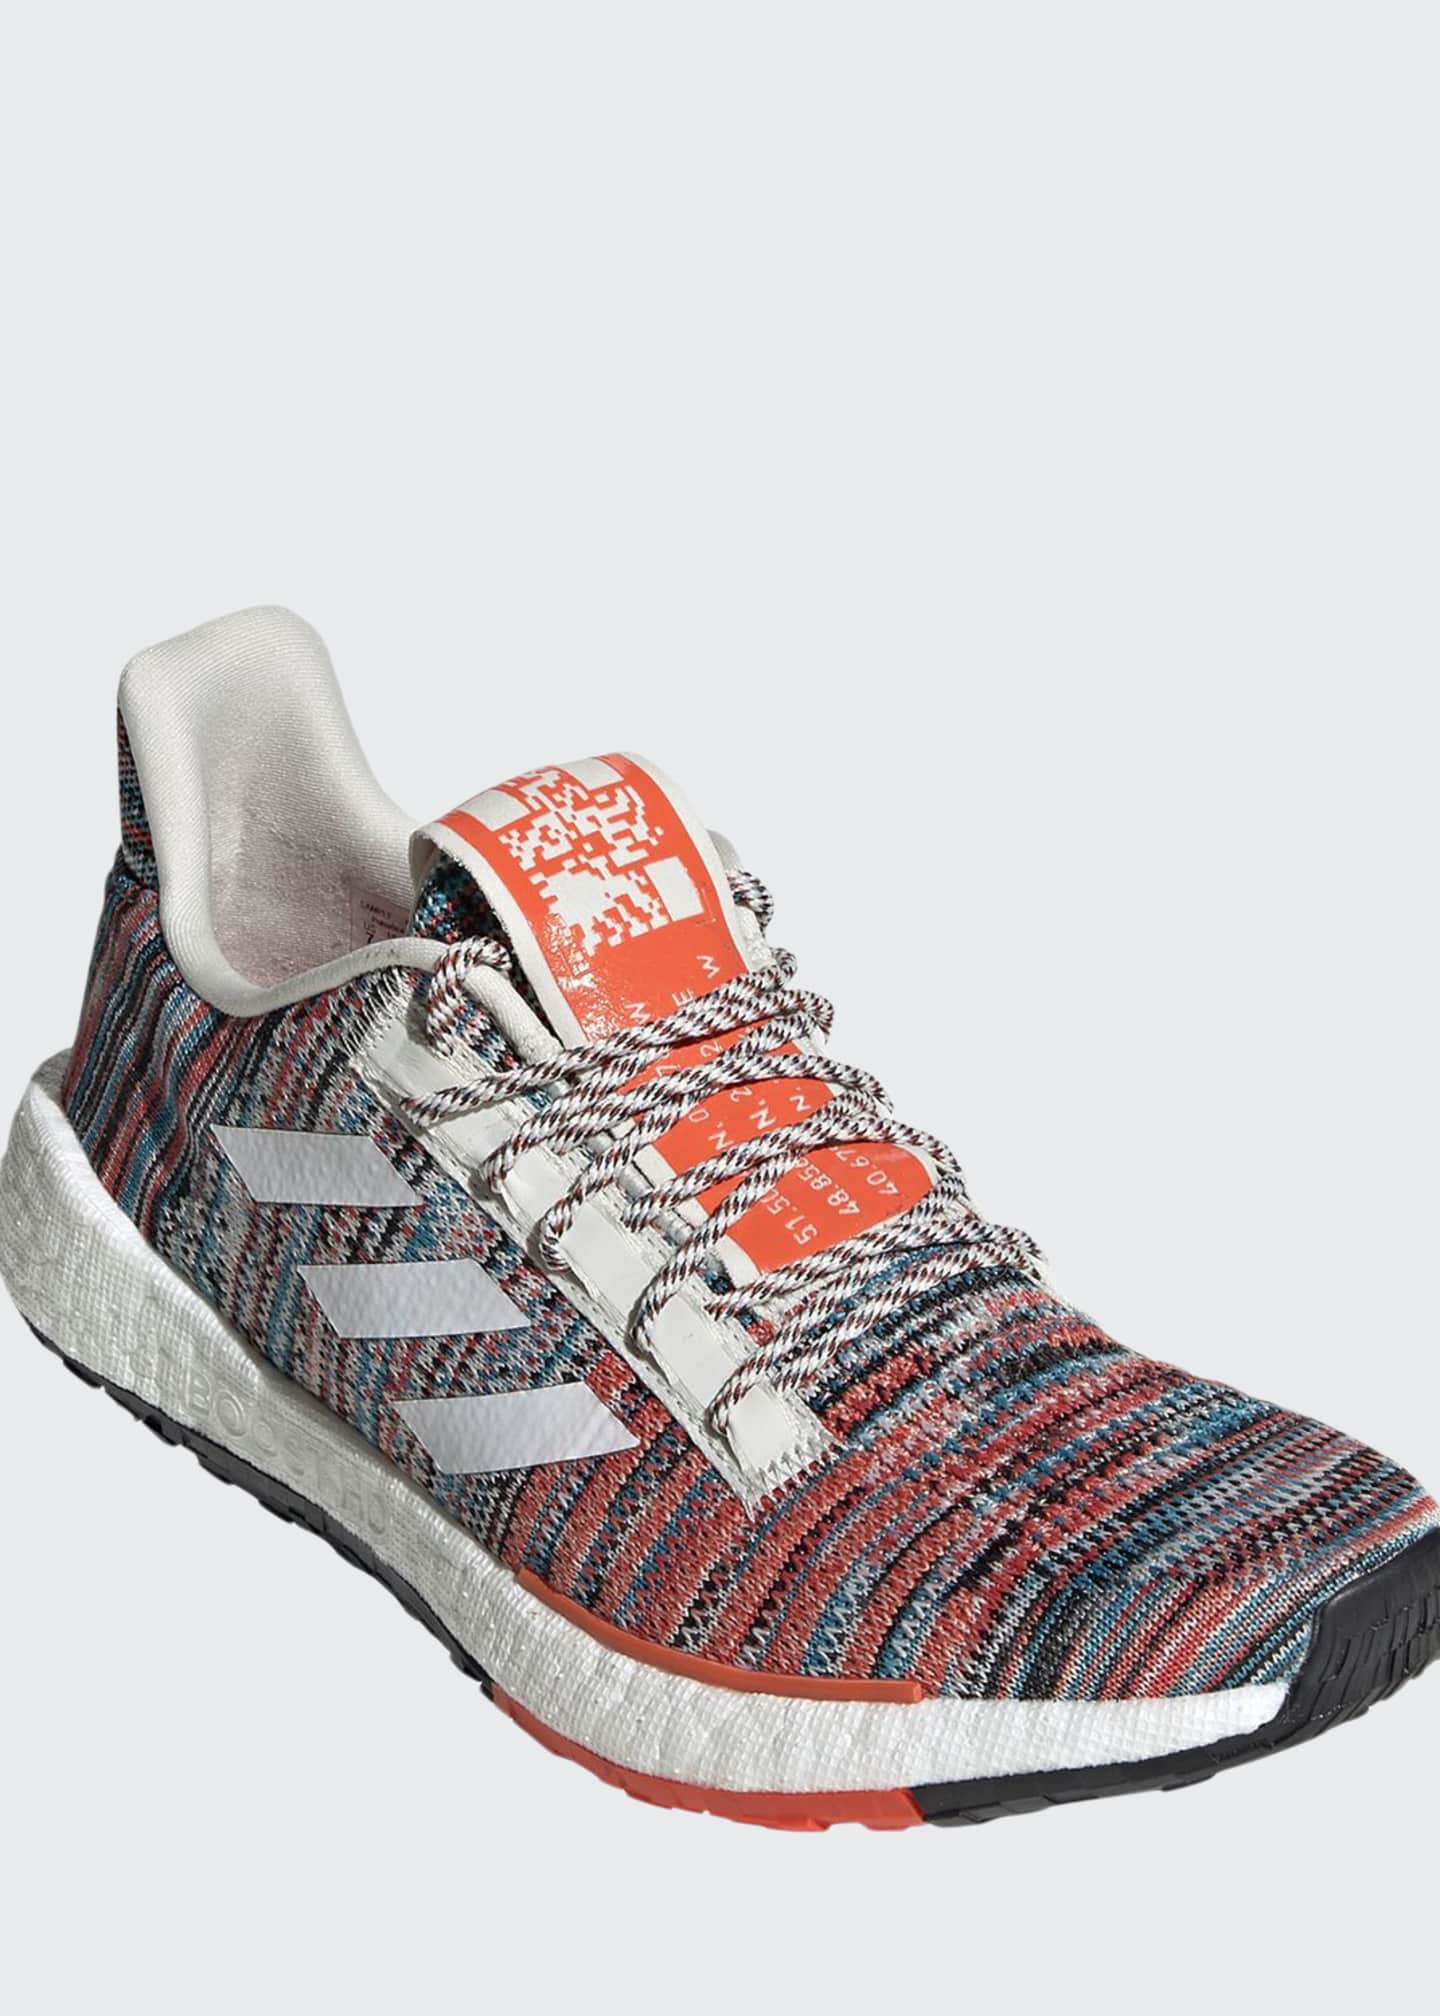 Adidas x missoni Men's PulseBoost HD Knit Running